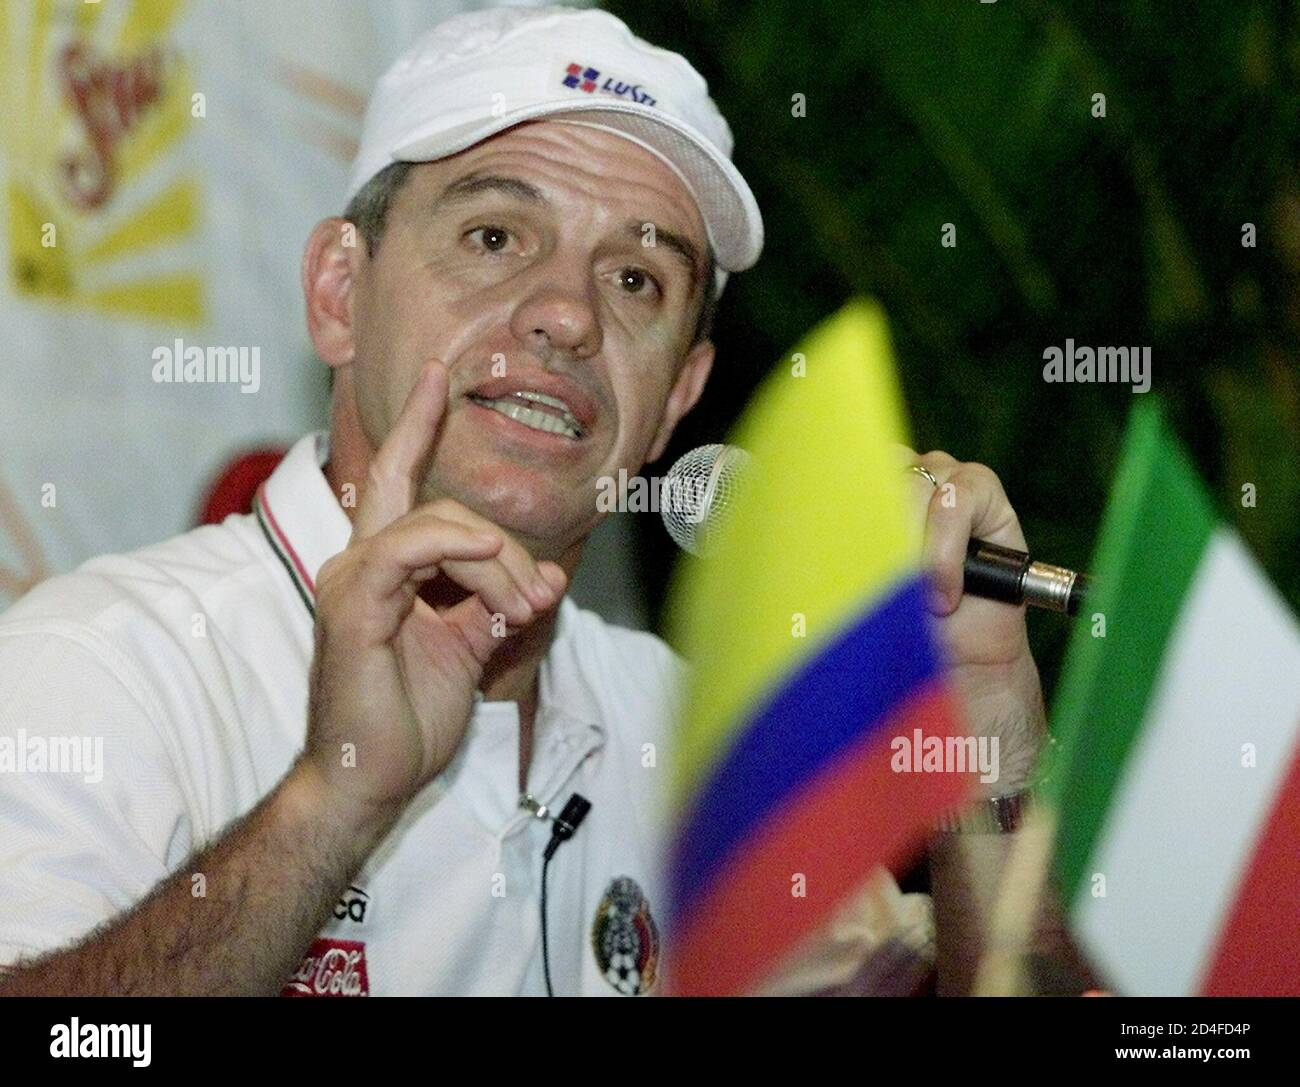 Head coach of the Mexican national soccer team, Javier Aguirre, answers a question during a press conference given at the Campestre Club in Cali where the team is staying during the Copa America, July 14, 2001. Mexico upset Brazil in their first match of the tournament and plays Paraguay on July 15.  RR/SV Stock Photo